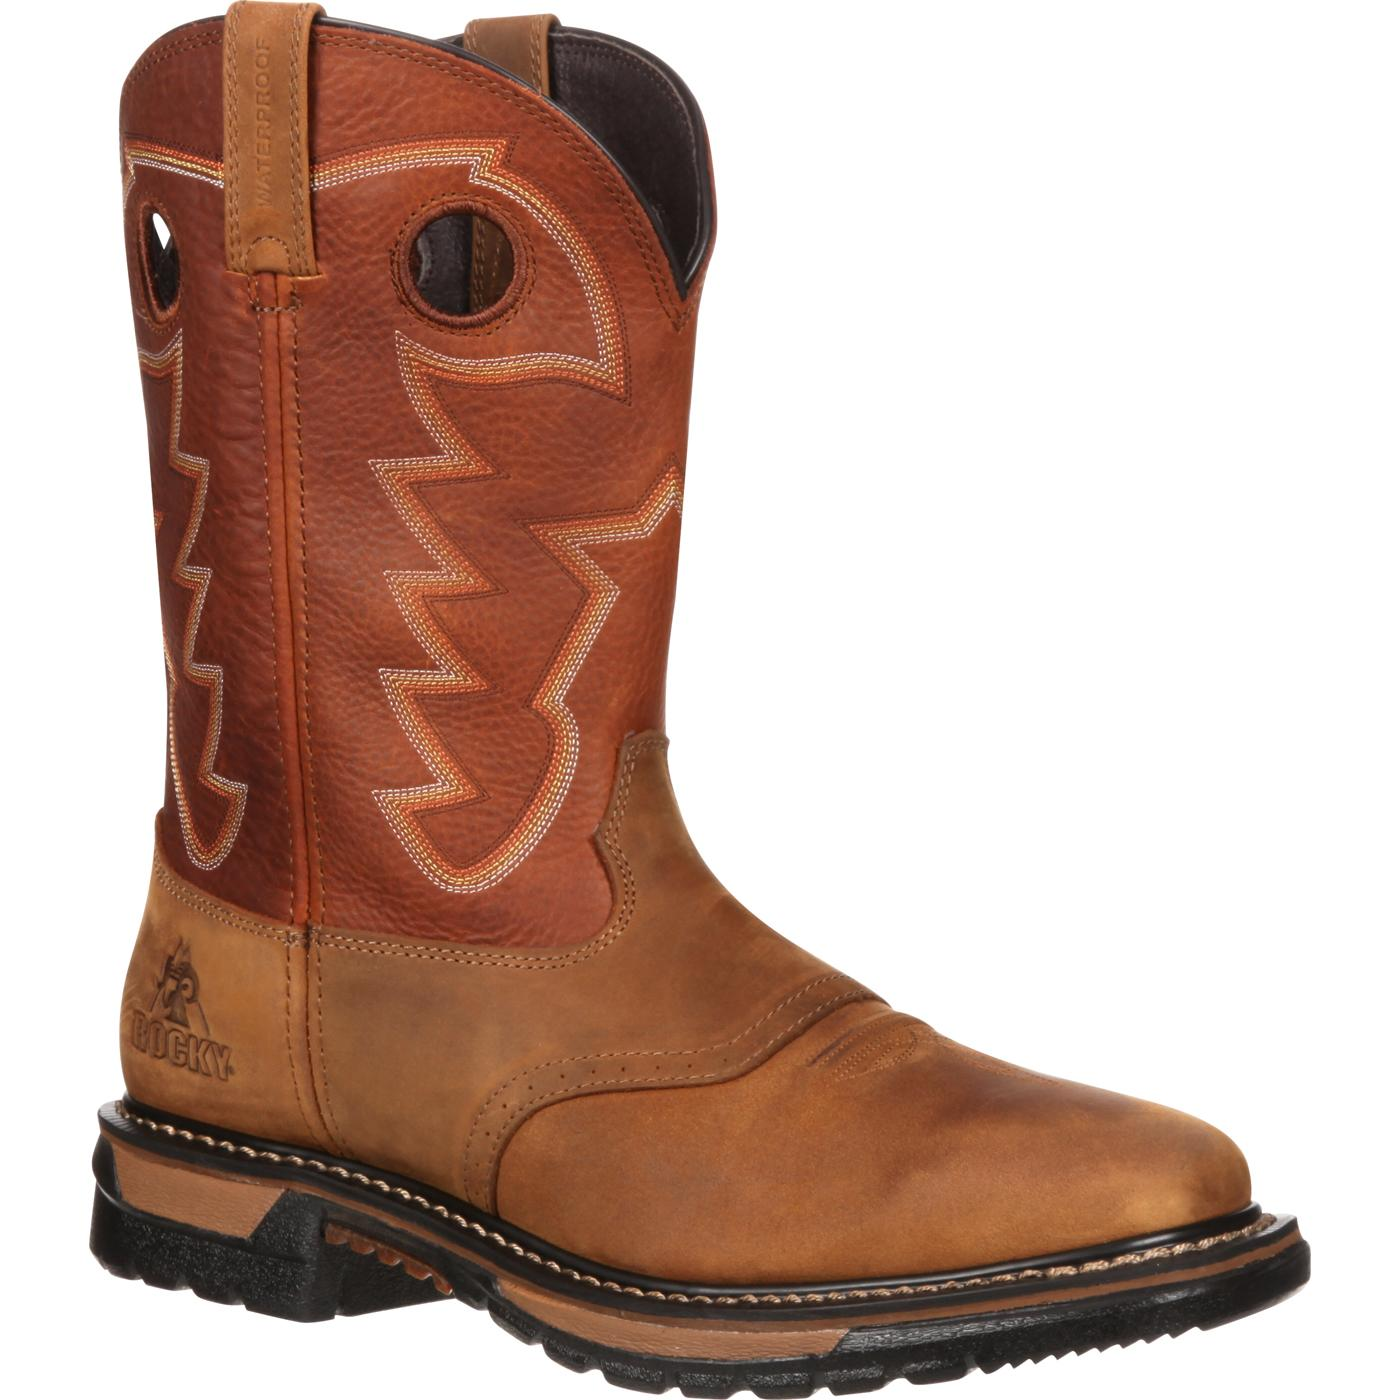 rocky original ride waterproof western boots rkyw039